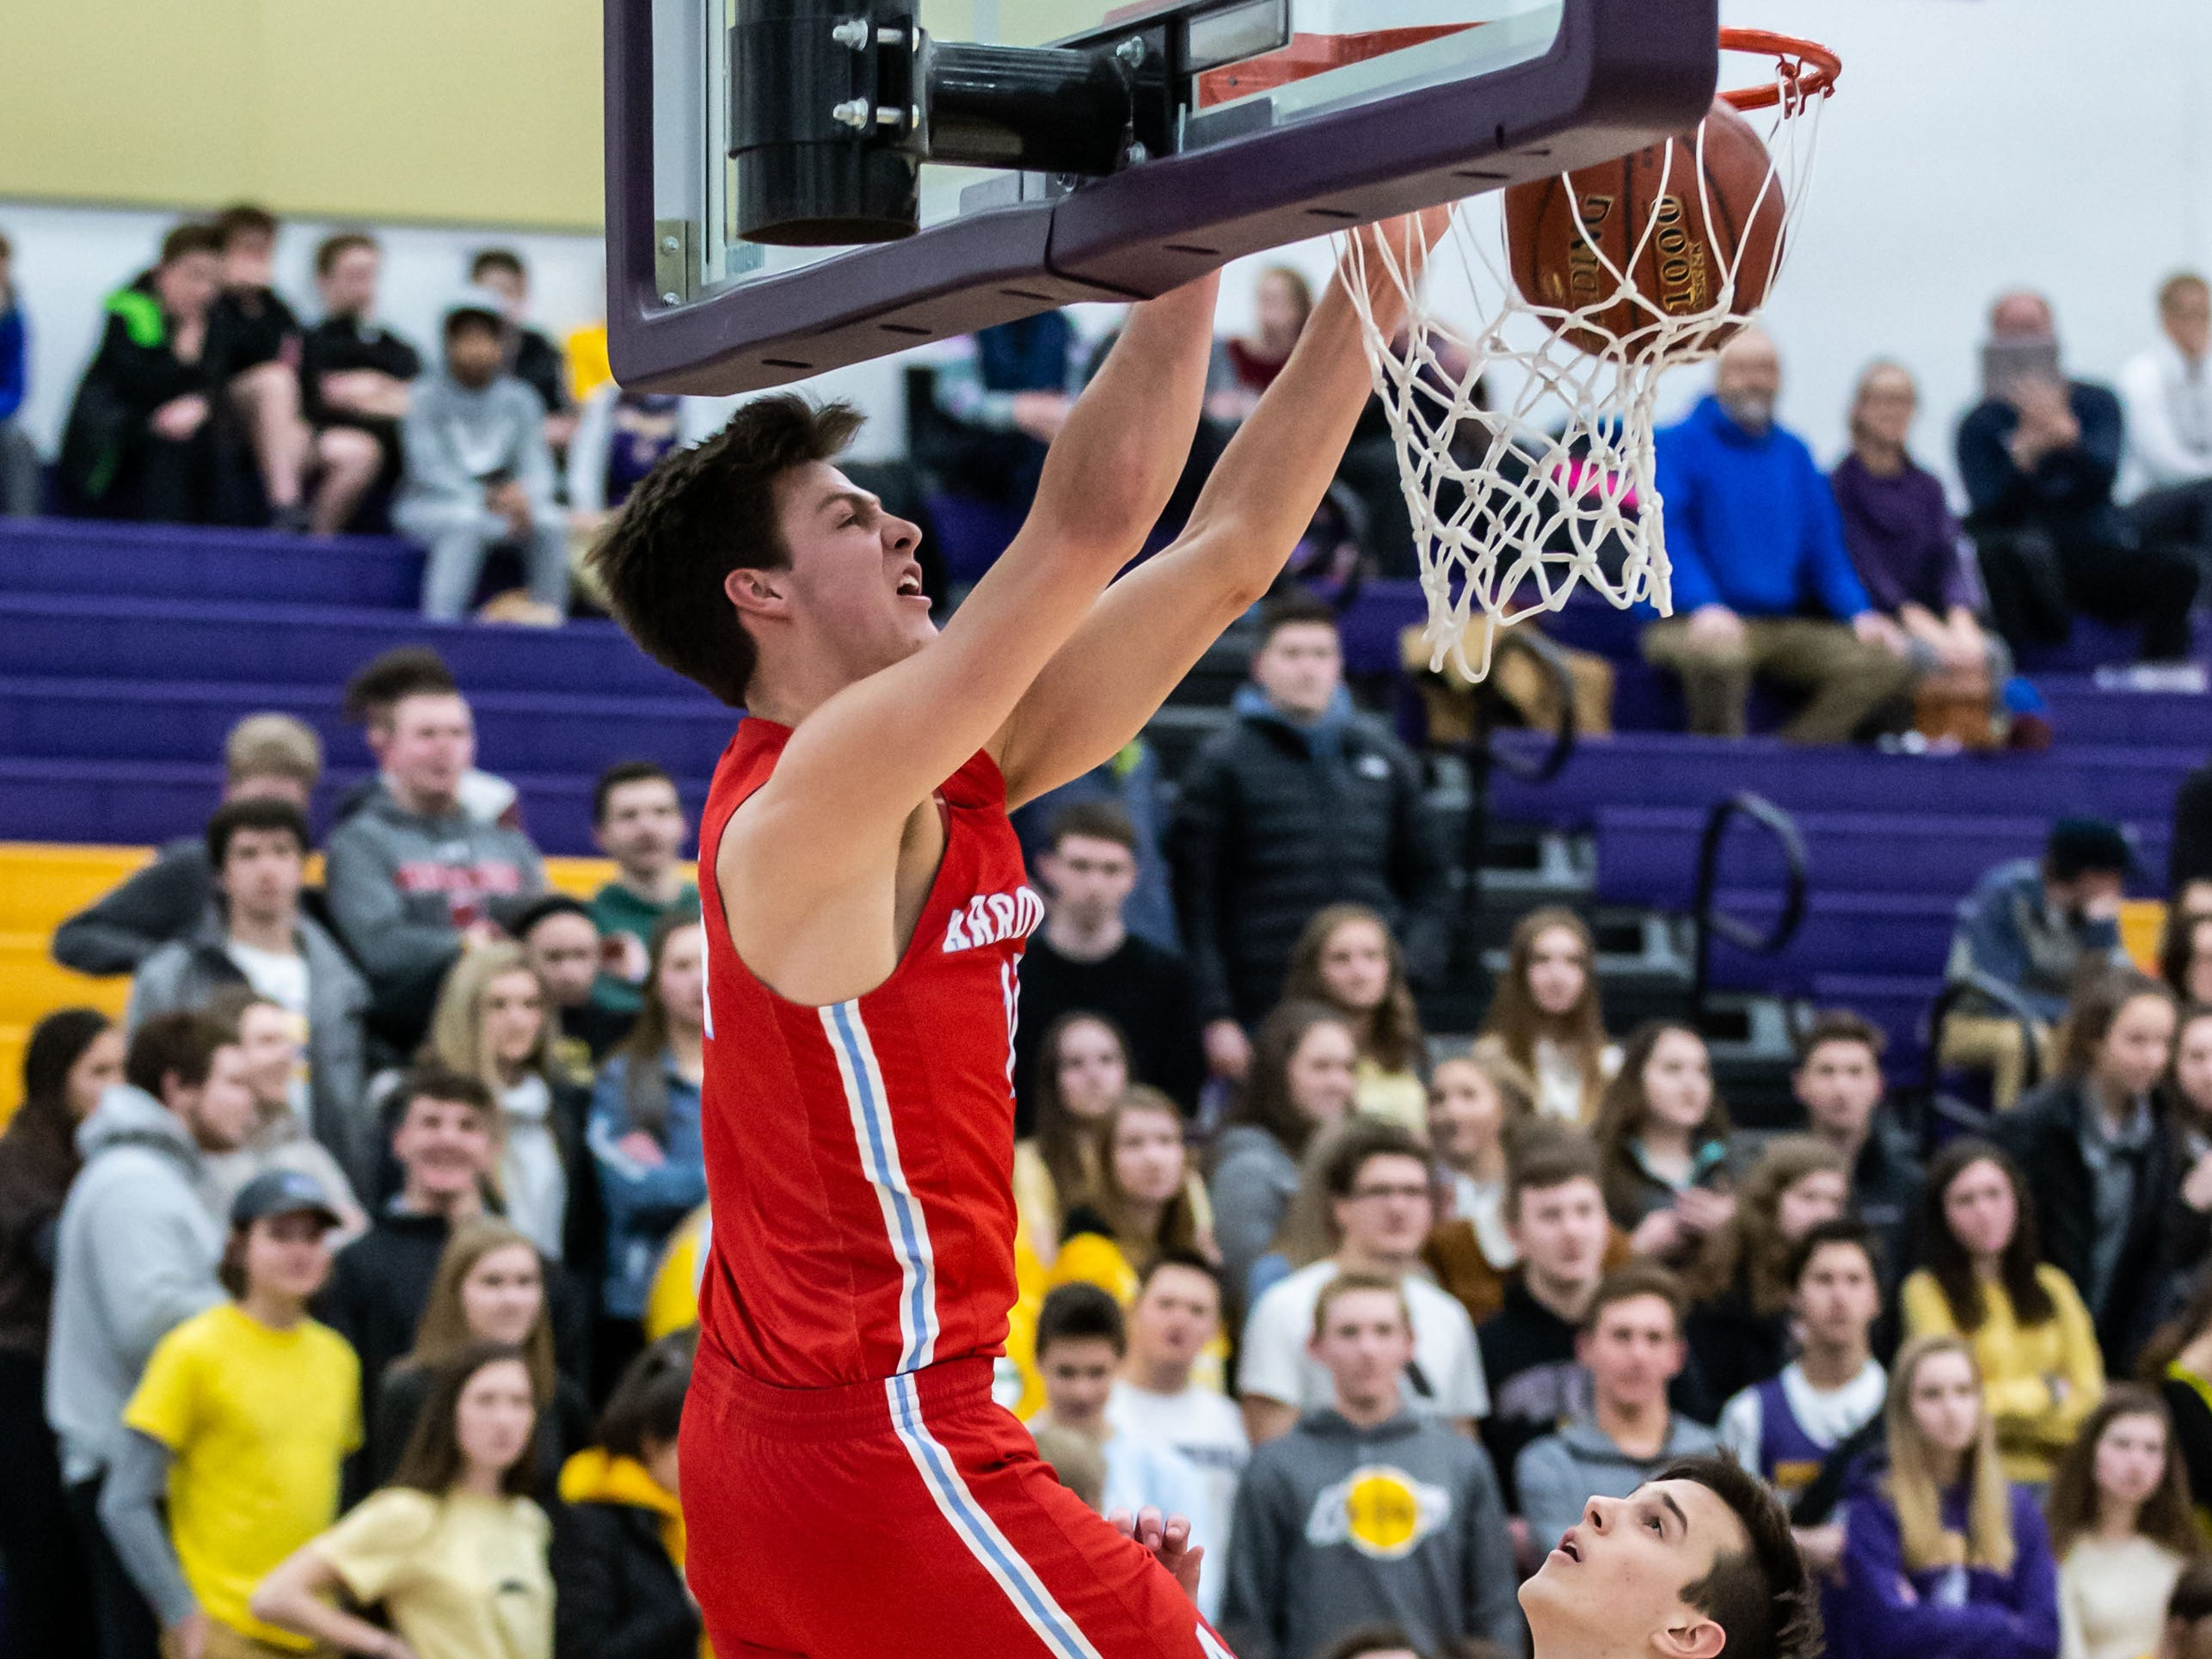 Arrowhead's Carter Gilmore (14) elevates for a slam dunk over Oconomowoc's Ray Lestina during the game at Oconomowoc on Tuesday, Jan. 29, 2019. The dunk did not count as a whistle had been blown.